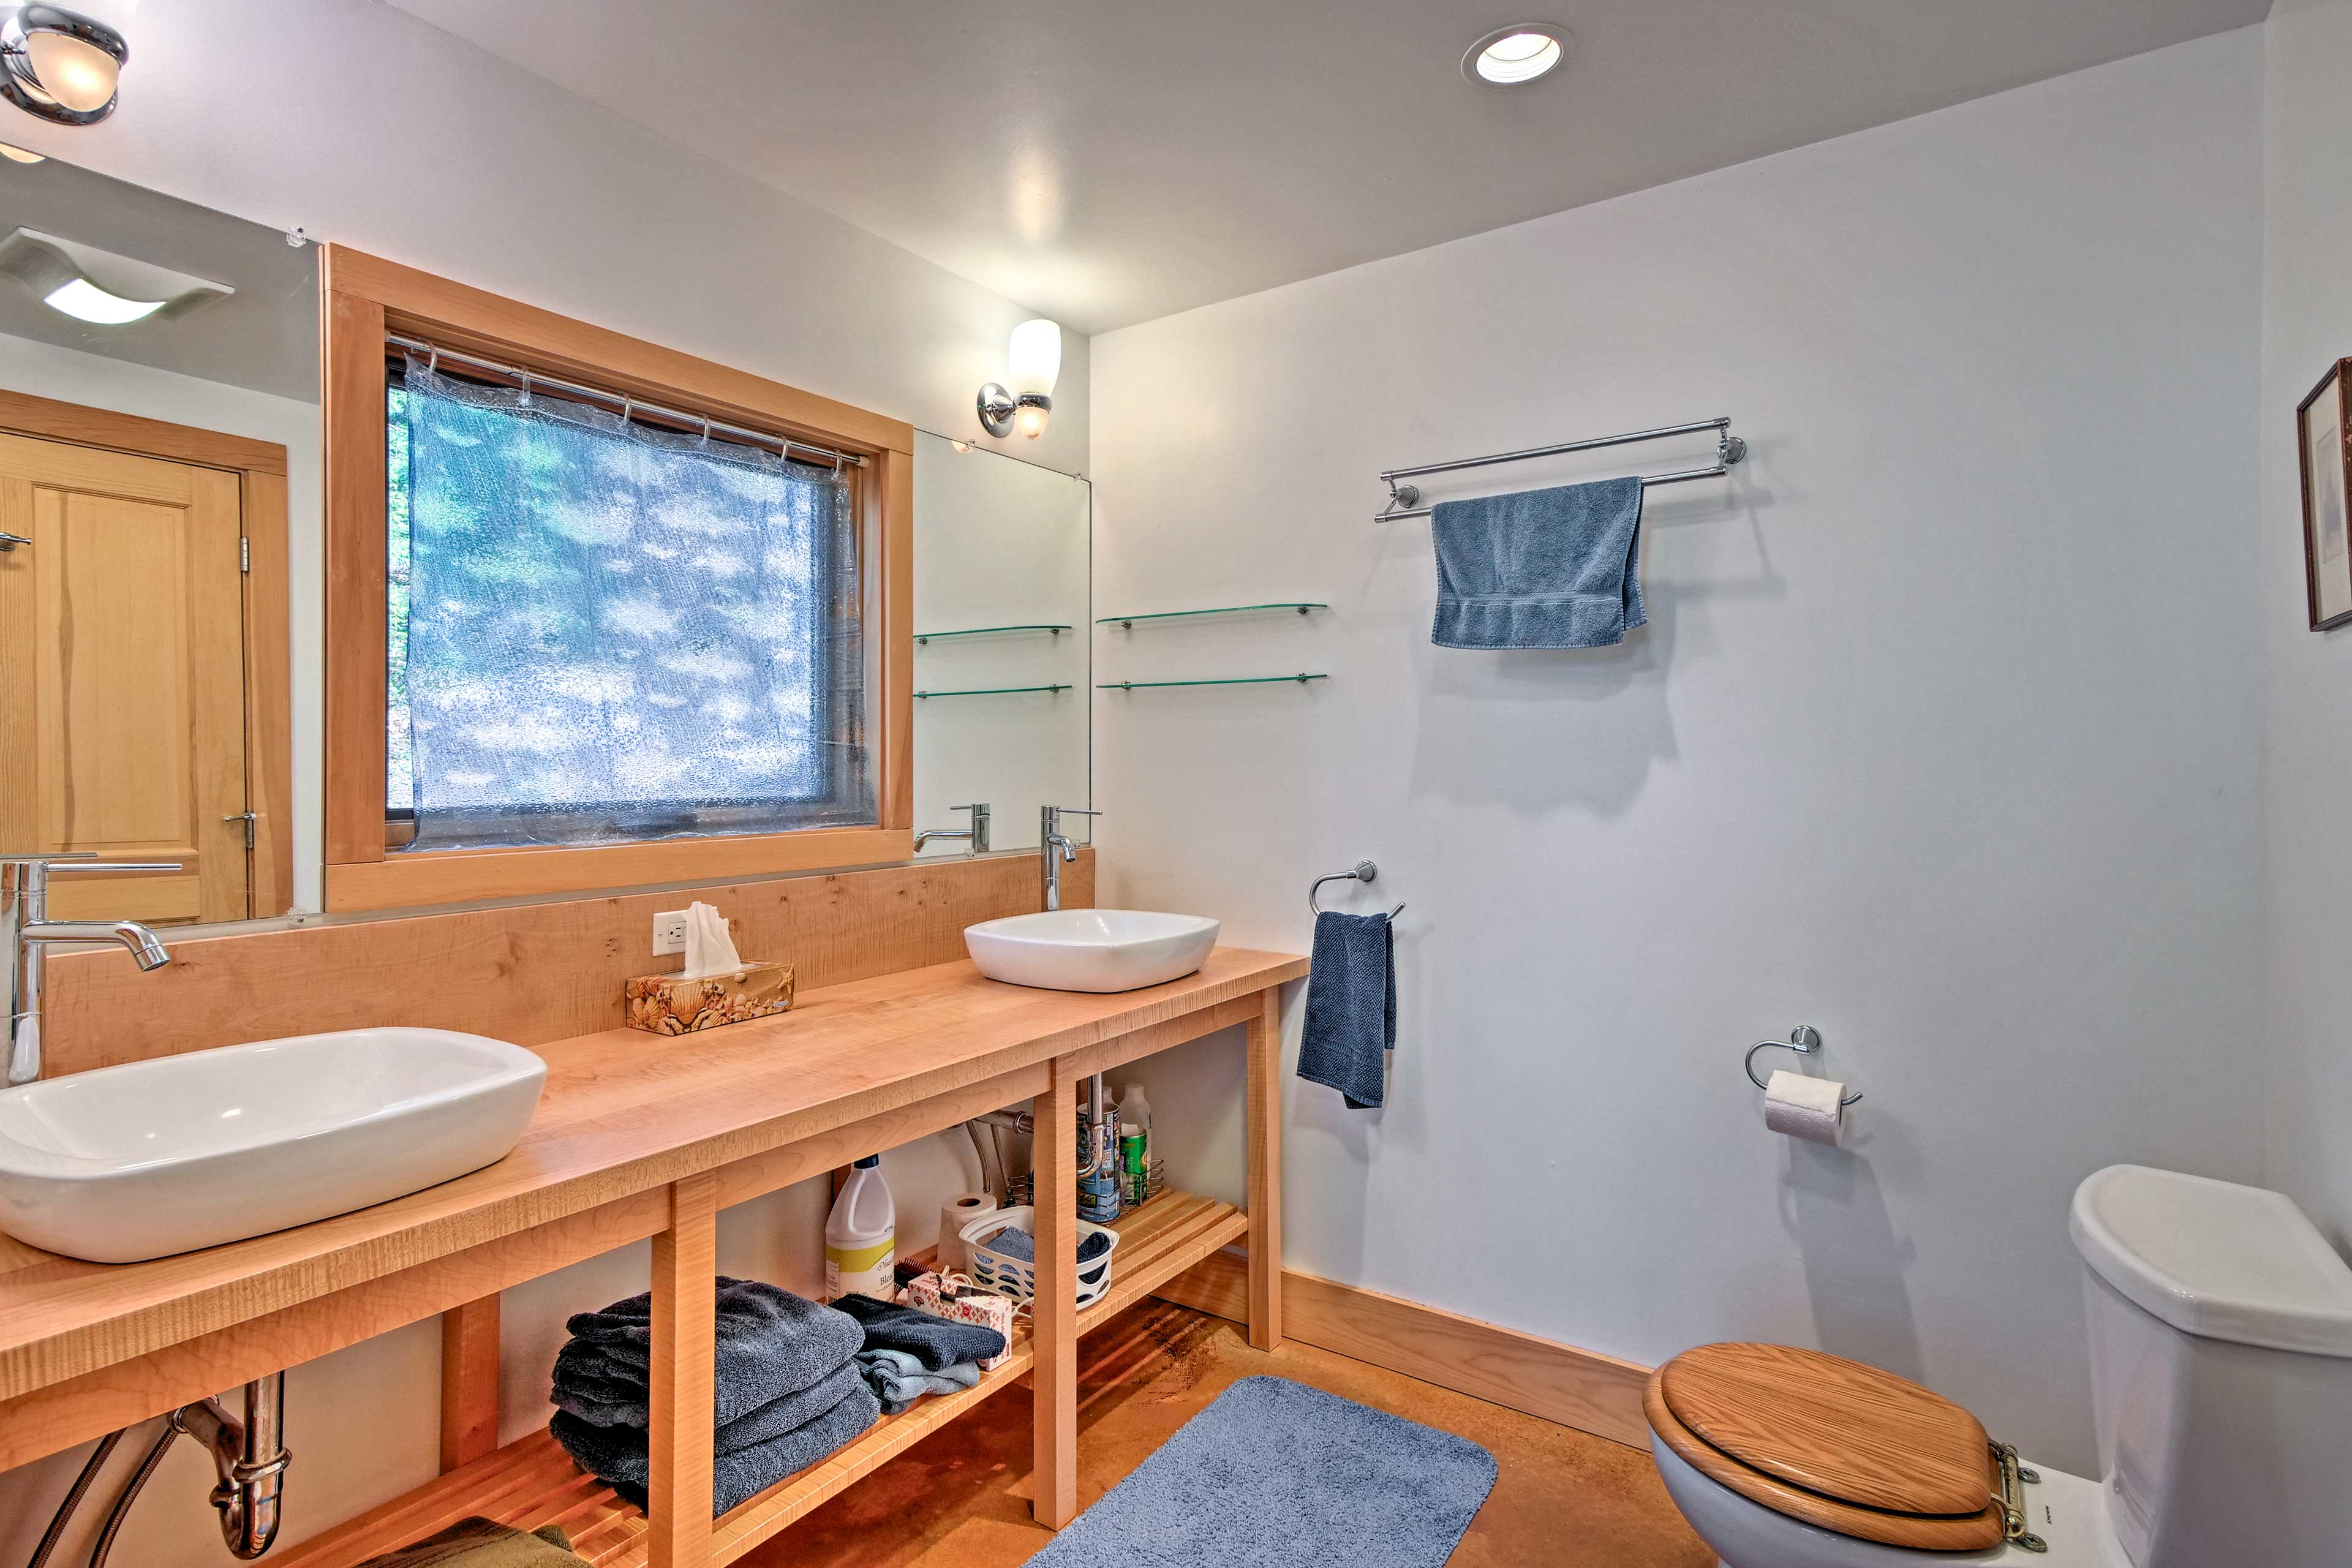 With 2 sinks, this bathroom eliminates the need to fight over mirror space.